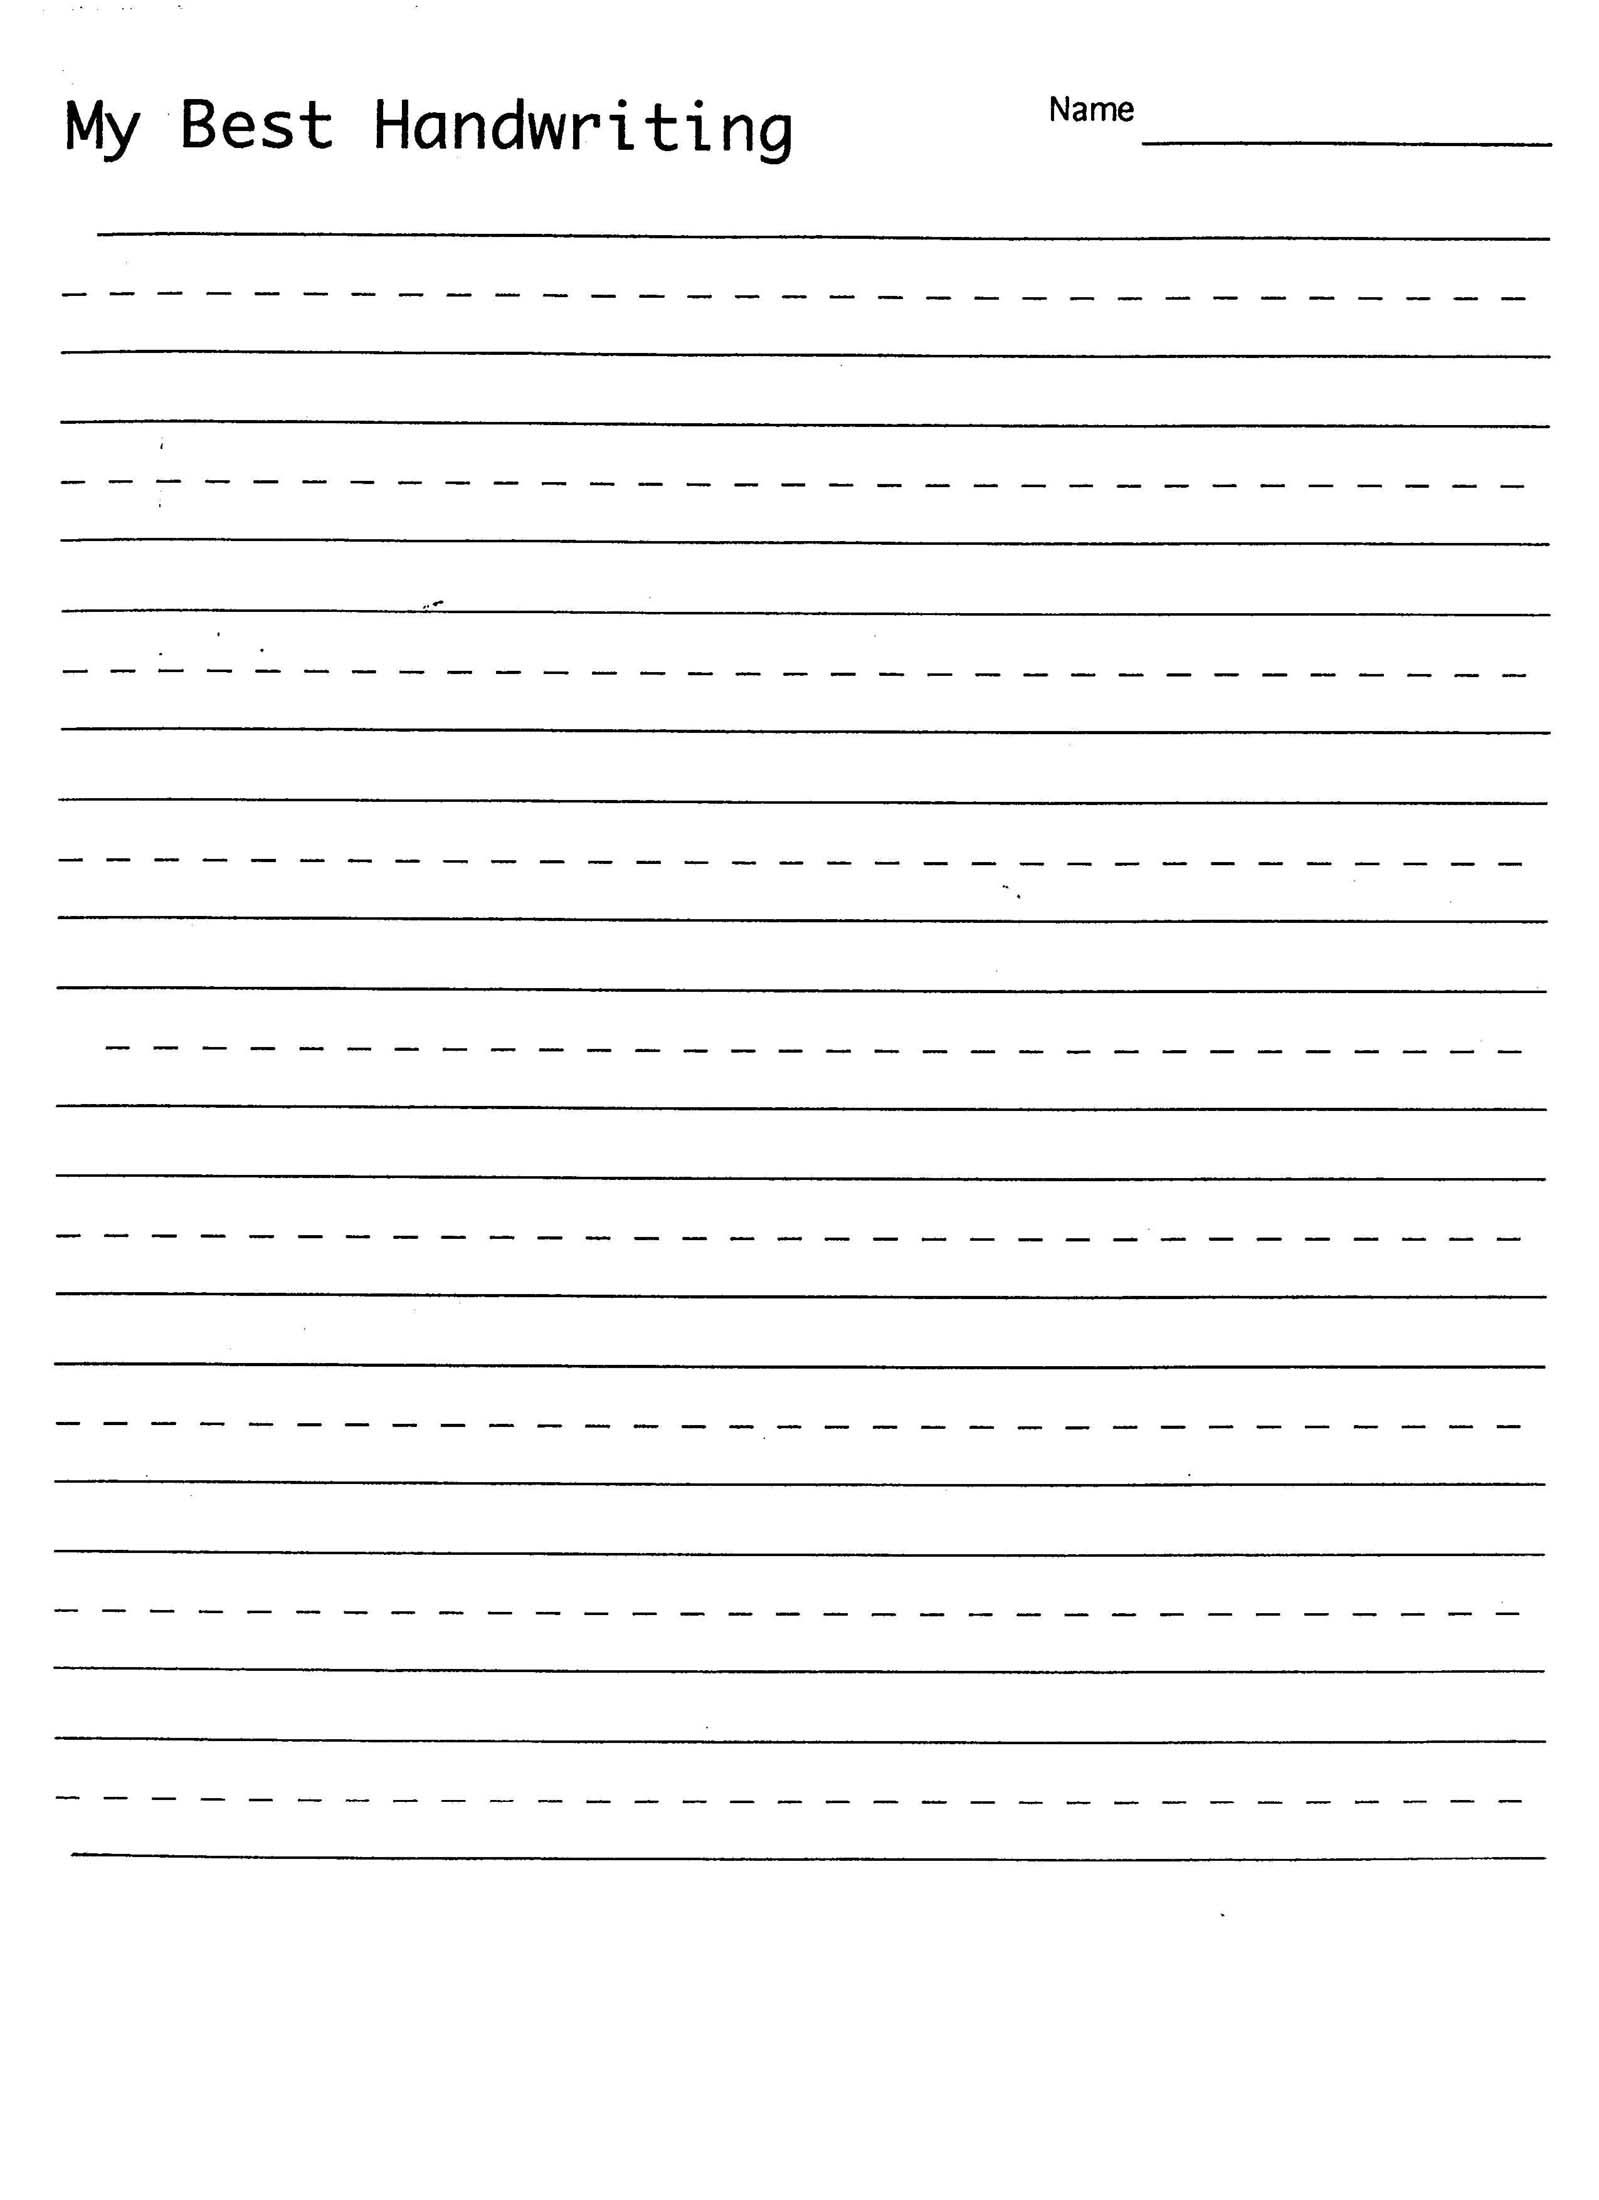 writing practice sheet - Kubre.euforic.co